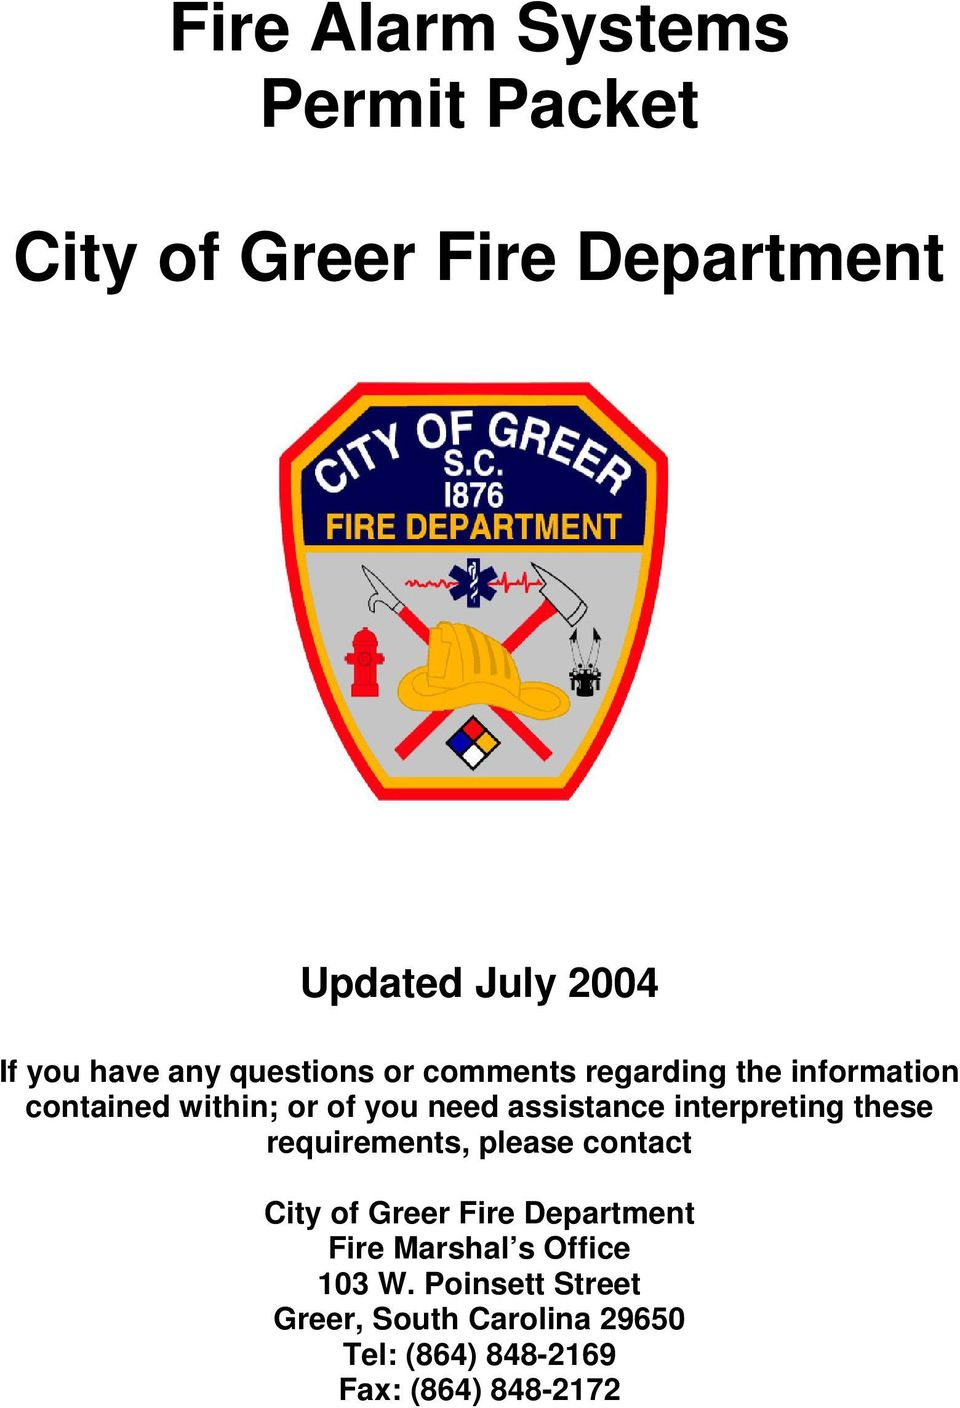 assistance interpreting these requirements, please contact City of Greer Fire Department Fire